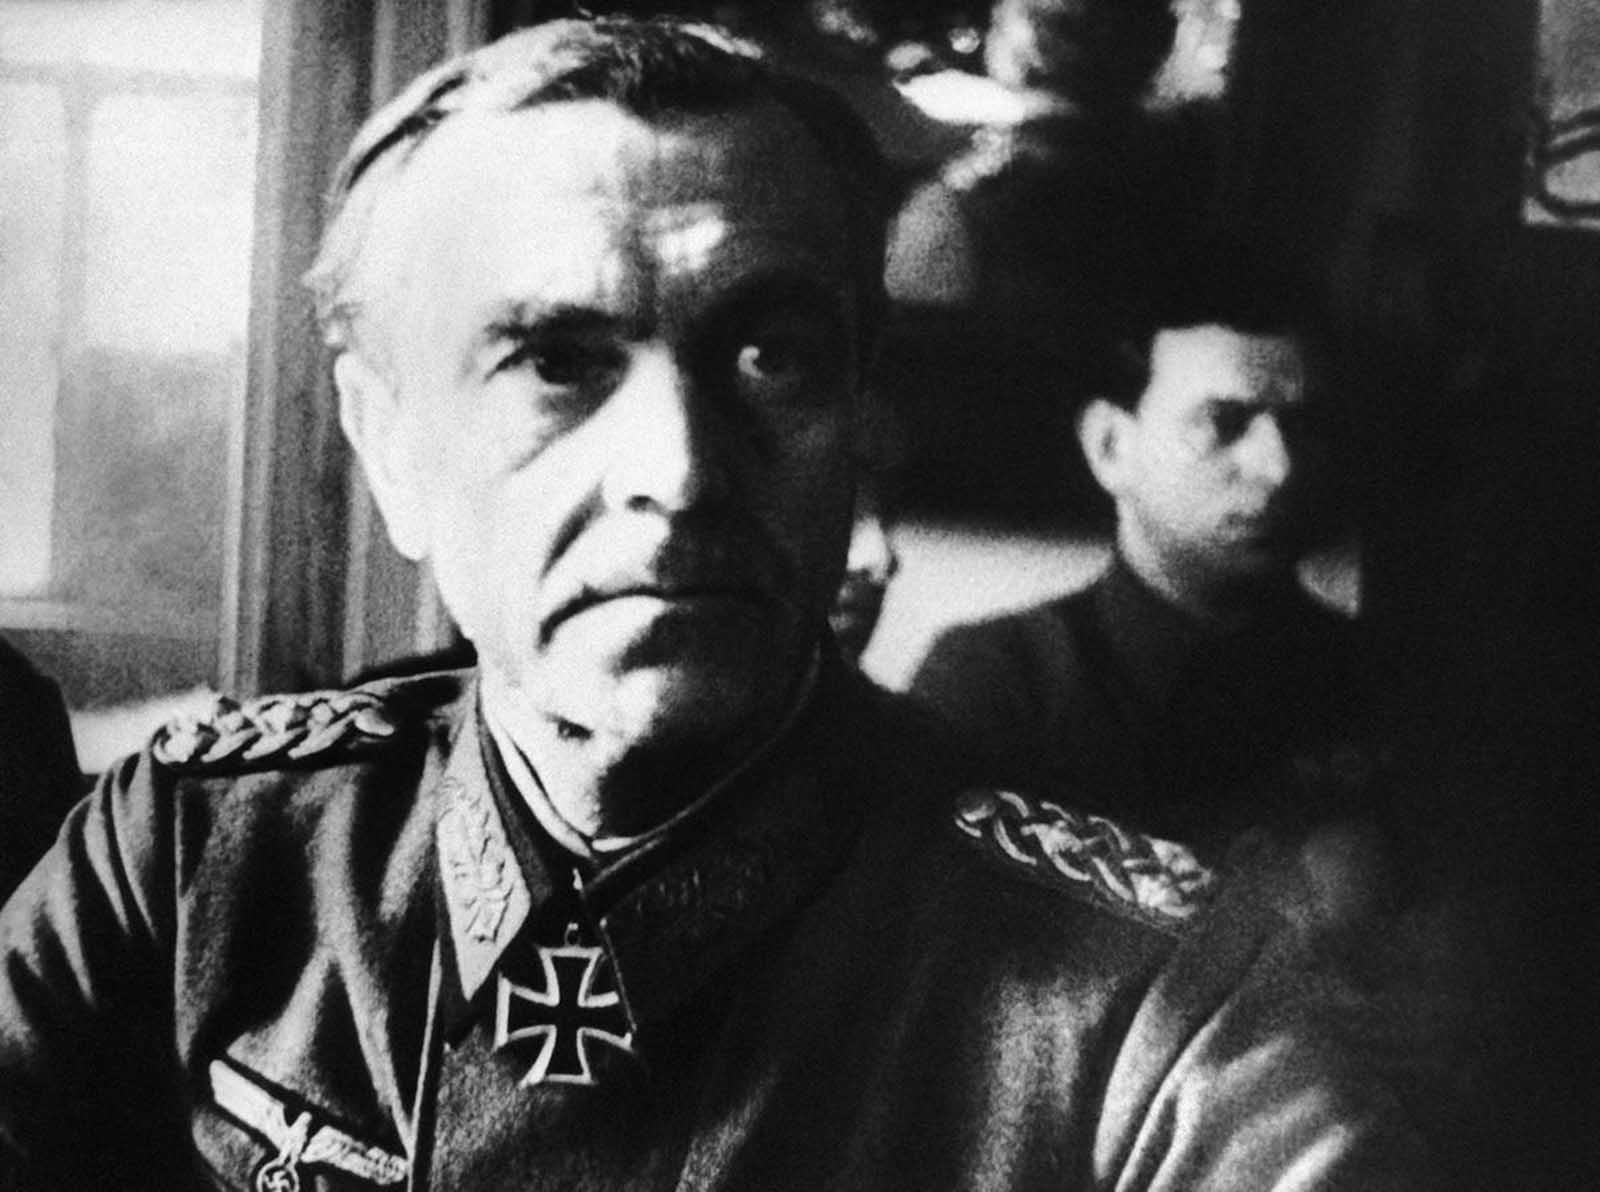 Germany's Field Marshal Friedrich Paulus at Red Army Headquarters for interrogation at Stalingrad, Russia, on March 1, 1943. Paulus was the first German Field Marshal taken prisoner in the war, defying Hitler's expectations that he fight until death (or take his own life in defeat). Paulus eventually became a vocal critic of the Nazi regime while in Soviet captivity, and later acted as a witness for the prosecution at the Nuremberg trials.